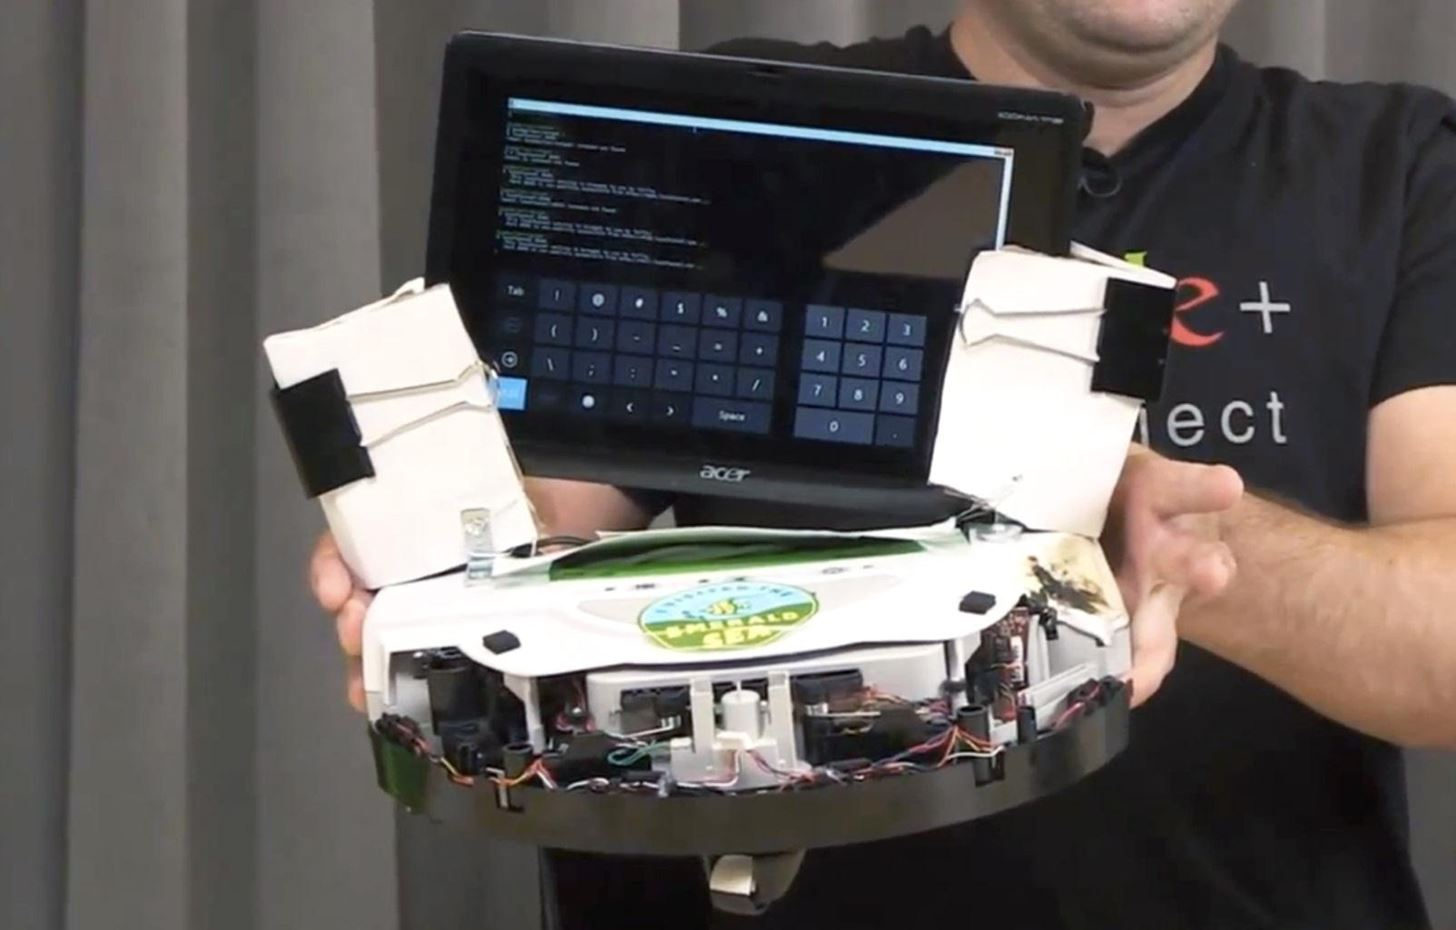 Old Roomba Vac Modified into a Robot Controlled by Google+ Hangout Users